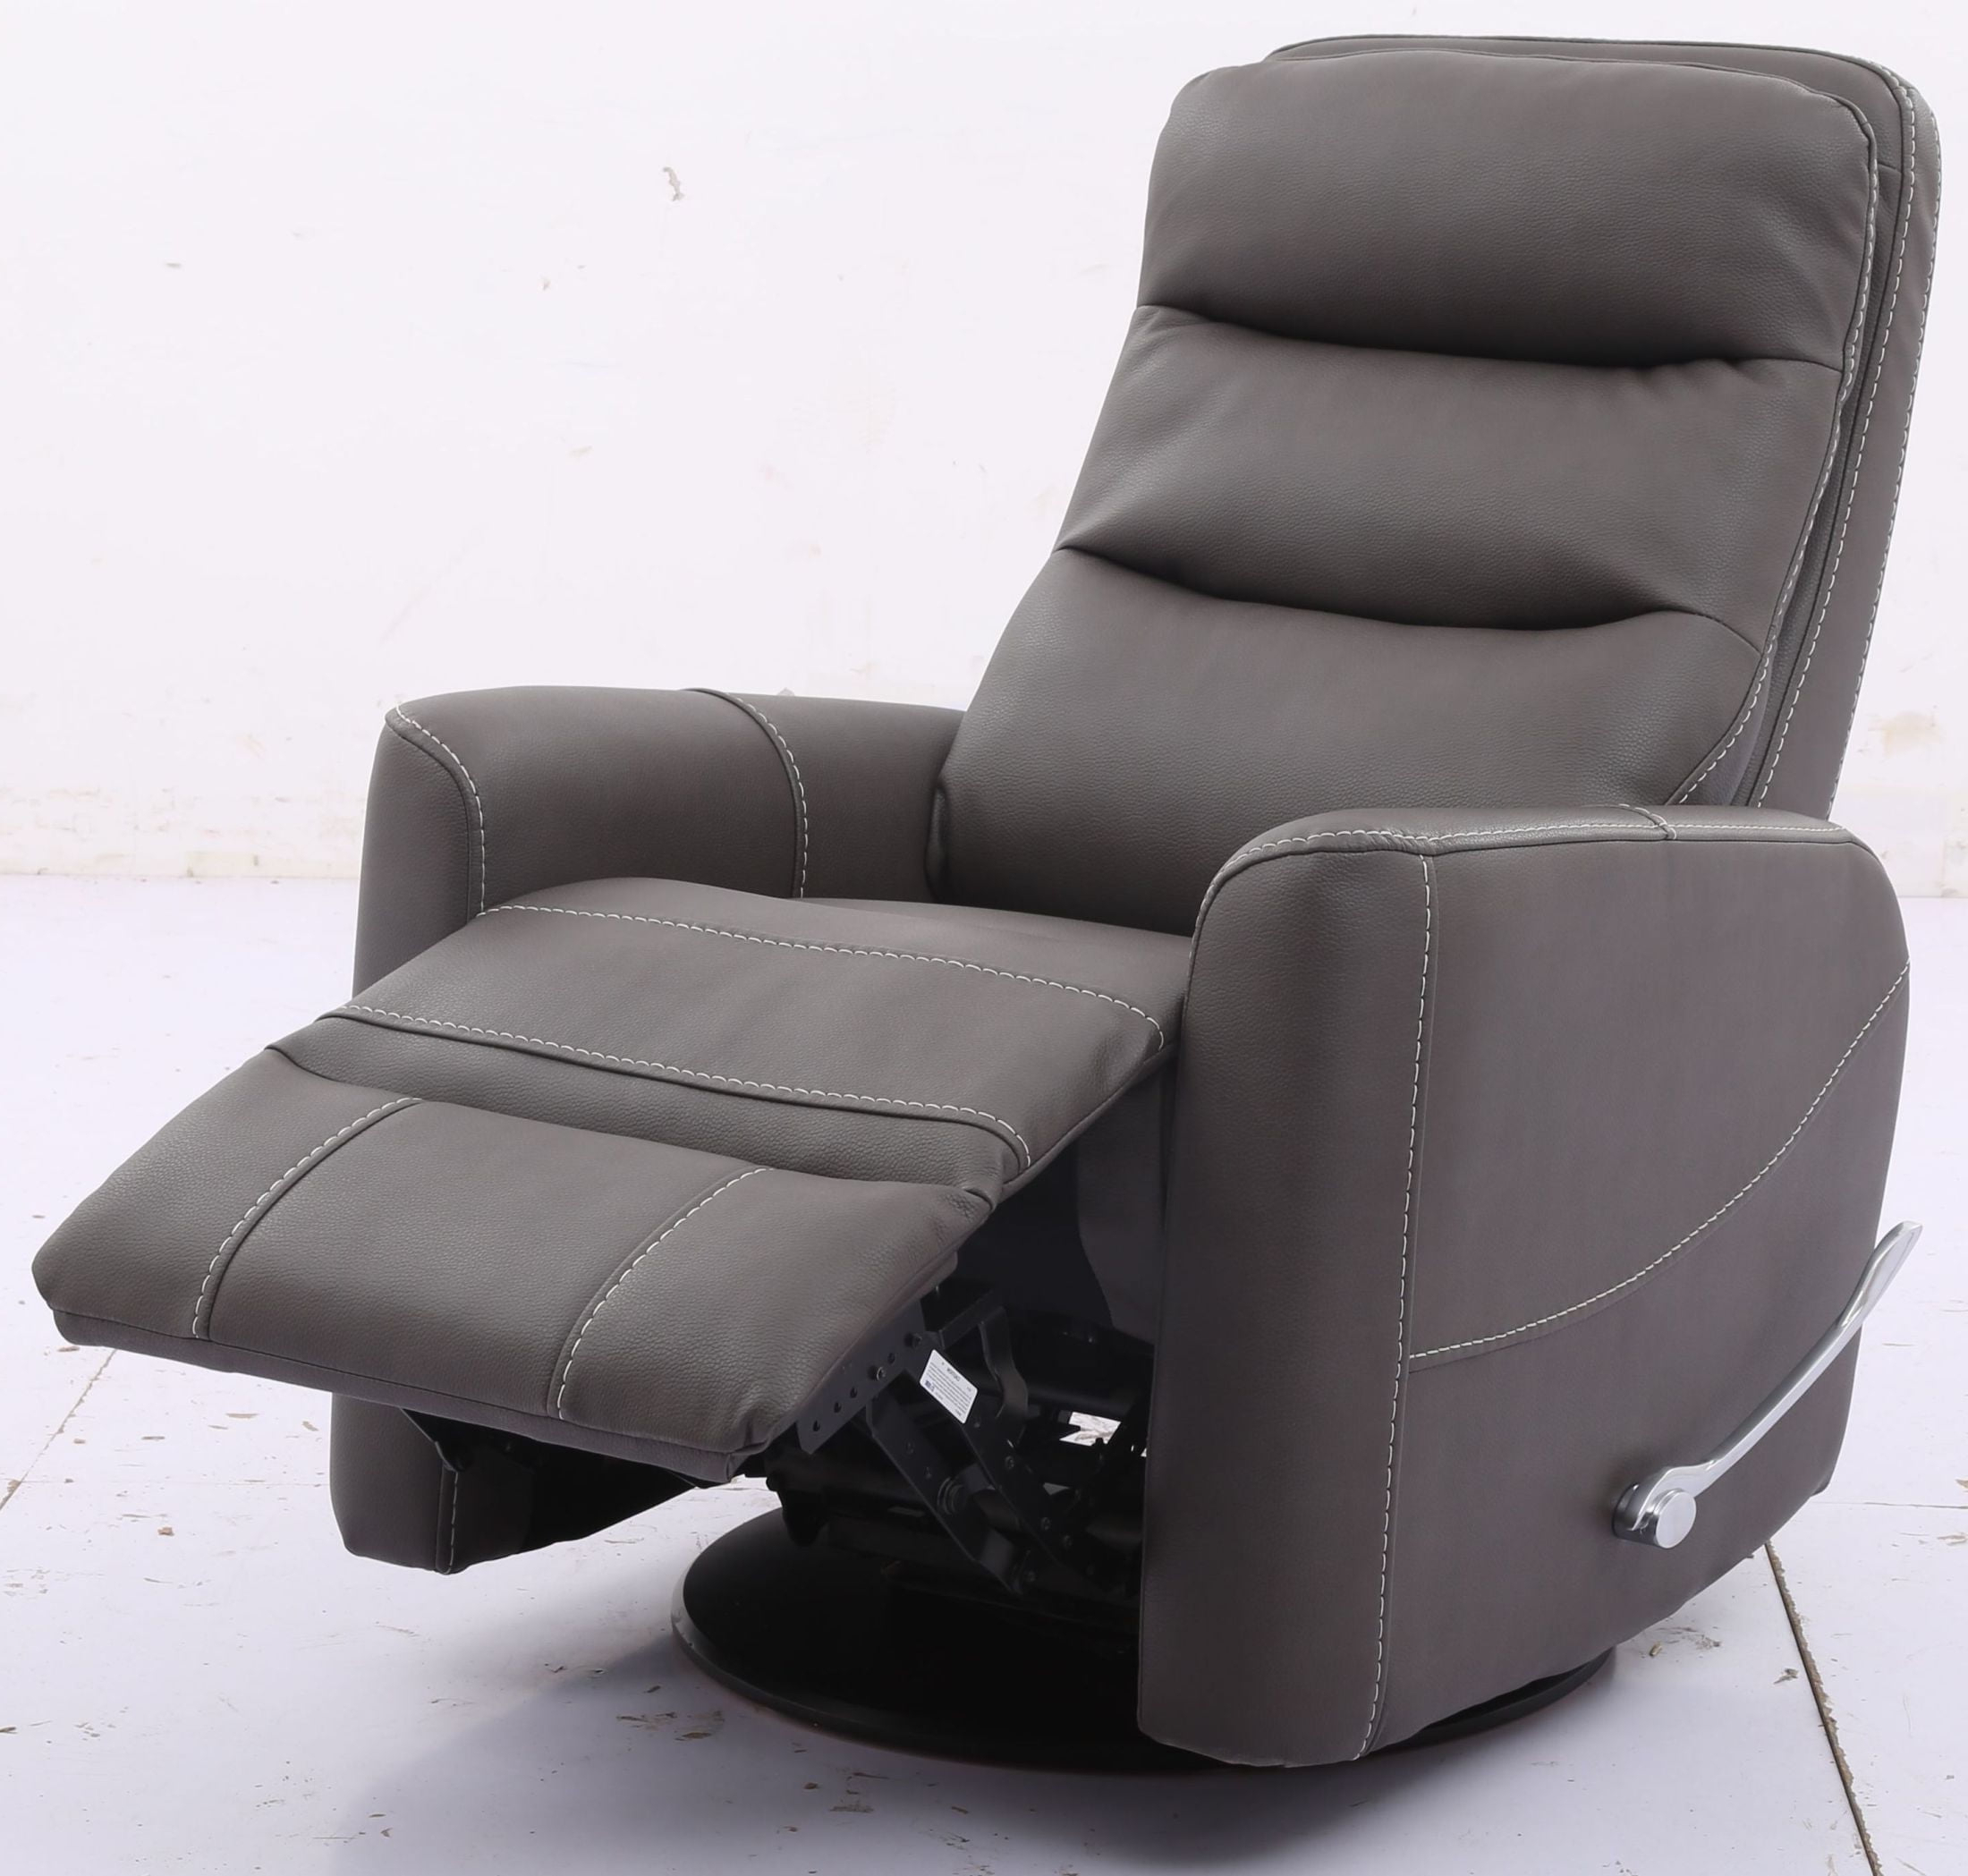 Hercules Haze Swivel Glider Recliner With Articulating Headrest From With Regard To Most Recently Released Hercules Chocolate Swivel Glider Recliners (View 11 of 20)